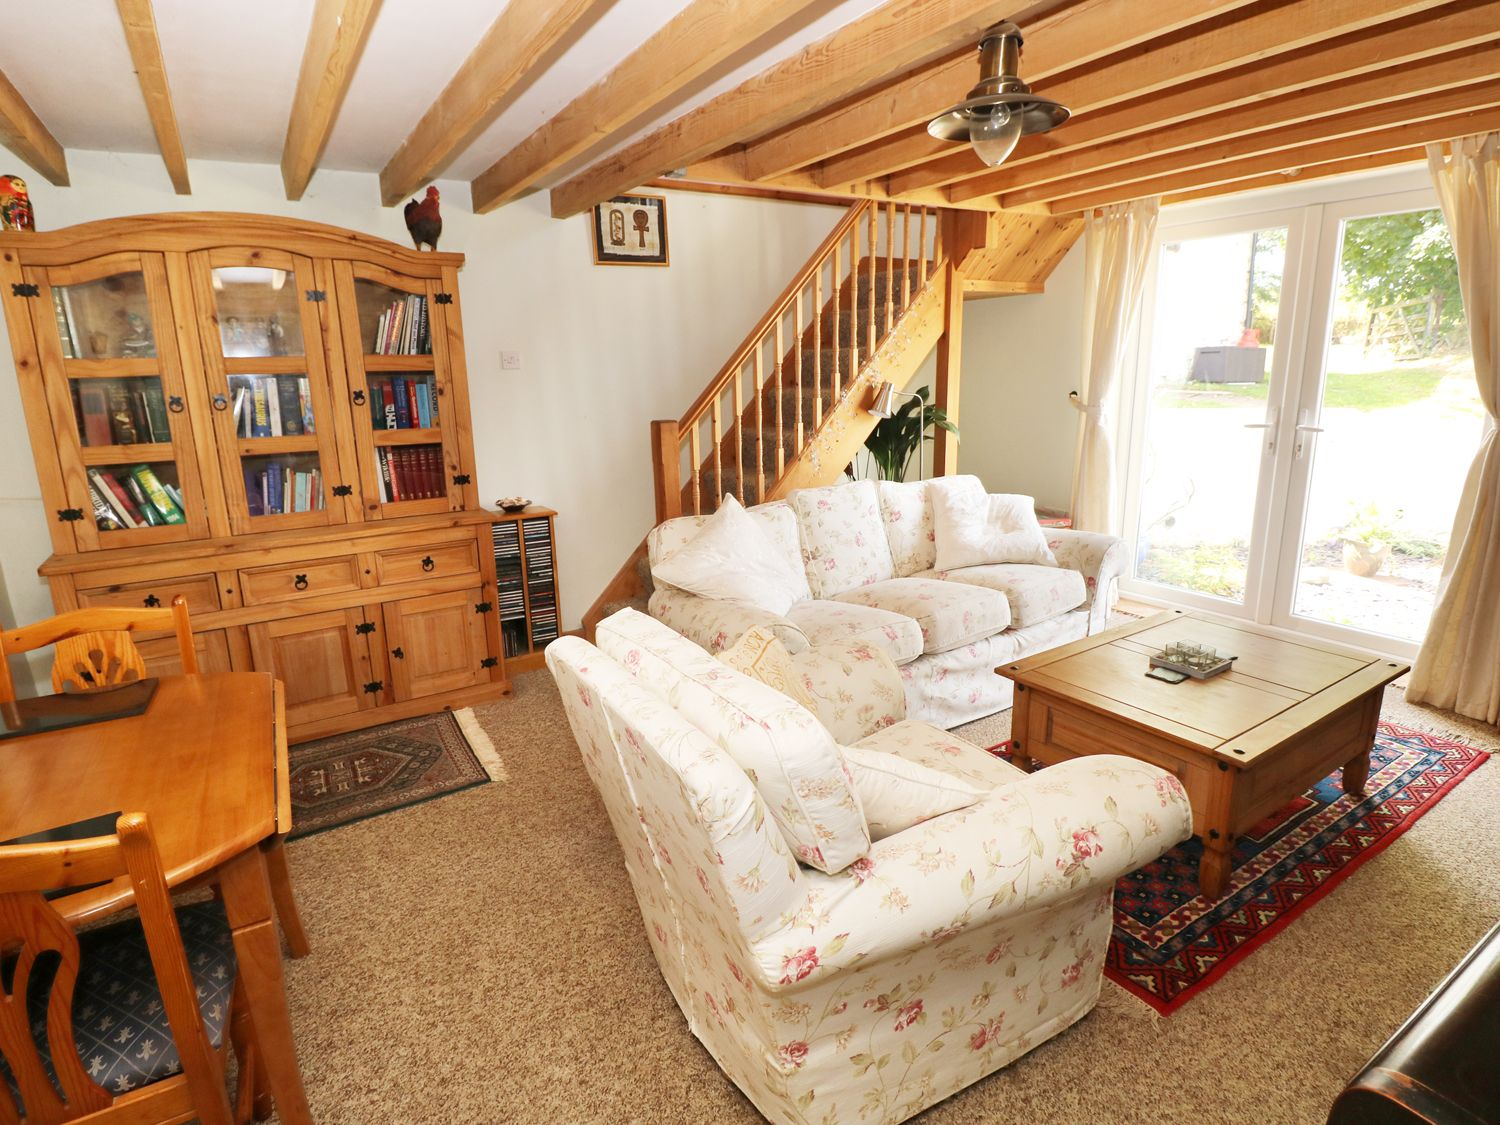 Llangrannog. Holiday cottages West Wales Morfa Isaf Farm Cottages Llangrannog